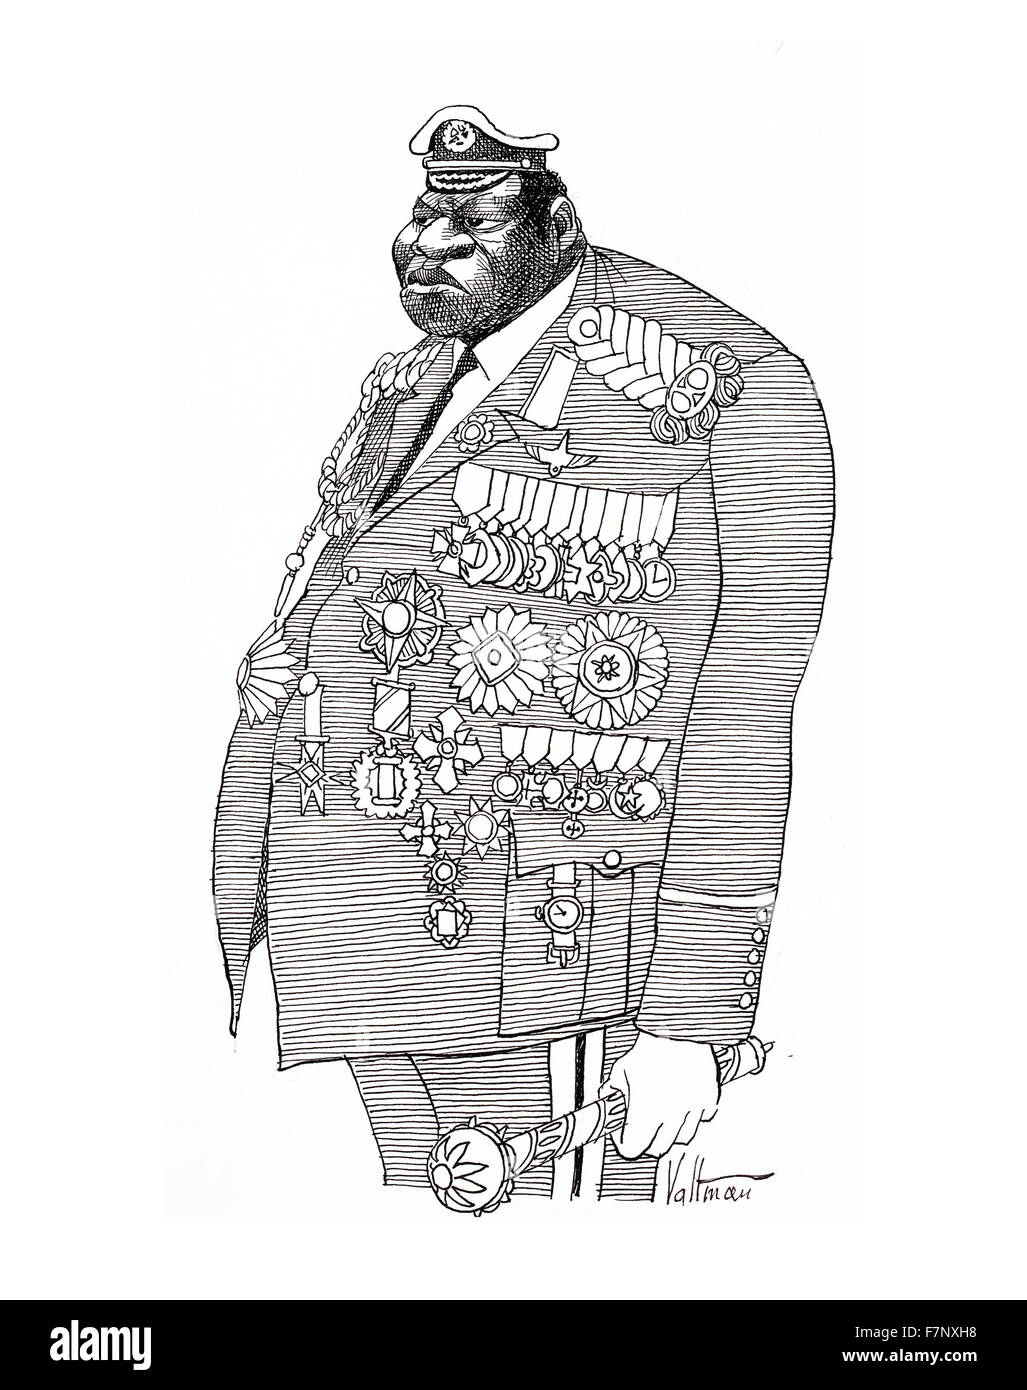 cartoon depicting Field Marshall, Idi Amin Dada (c. 1925 – 16 August 2003) President of Uganda, from 1971 to 1979. - Stock Image